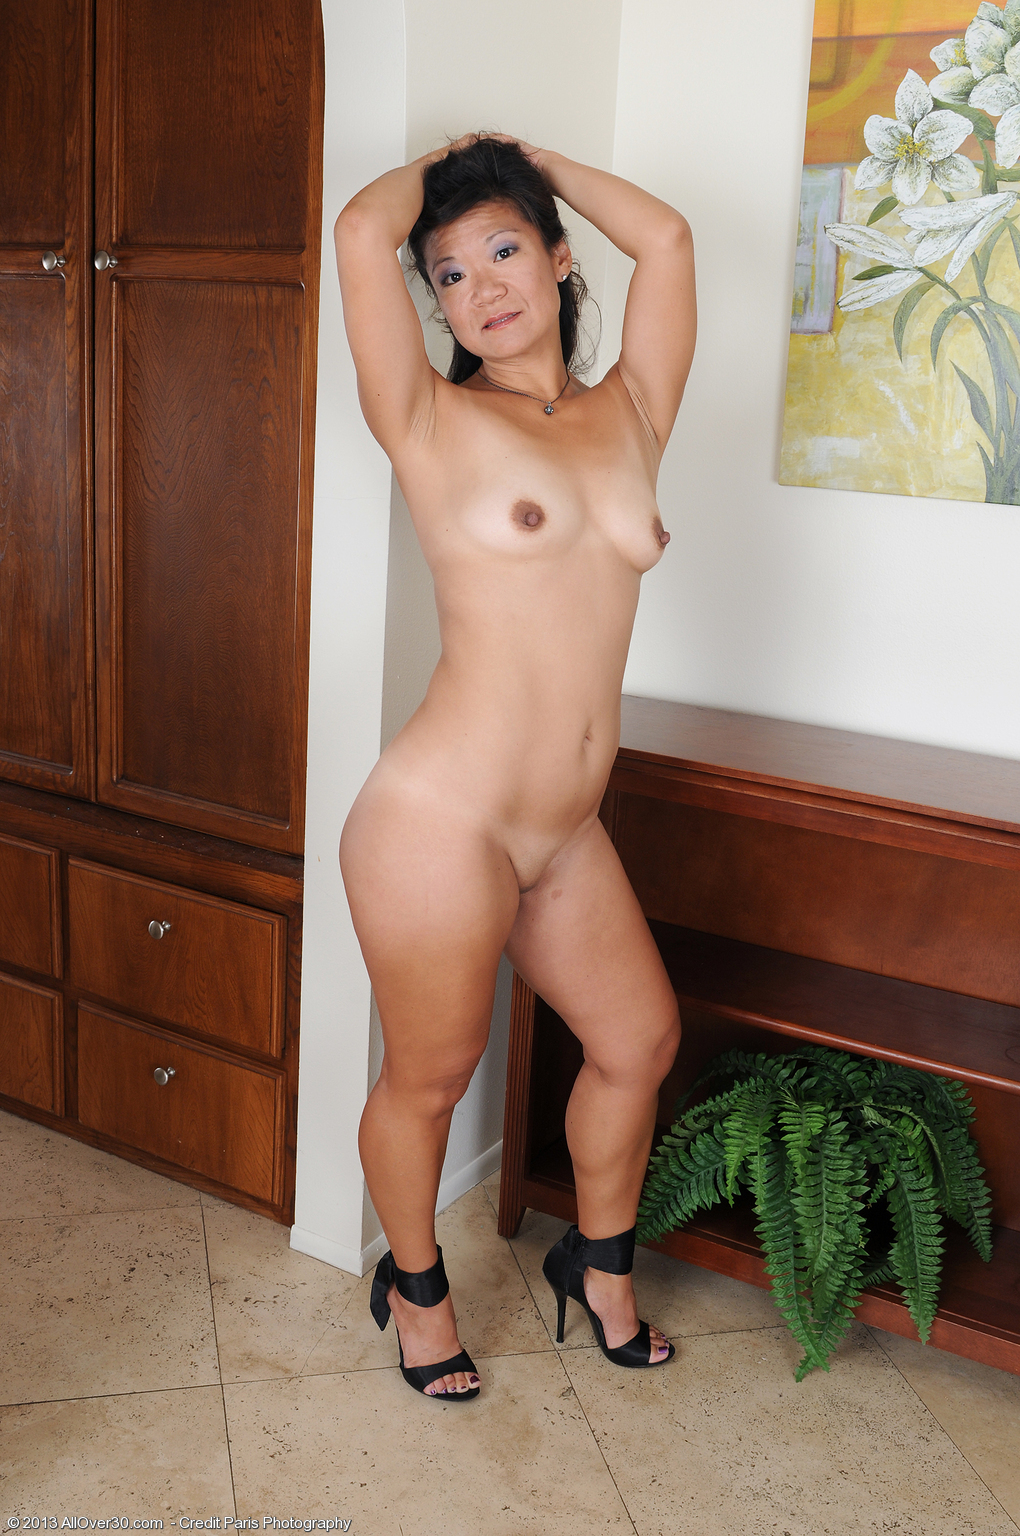 Cute nude mature women